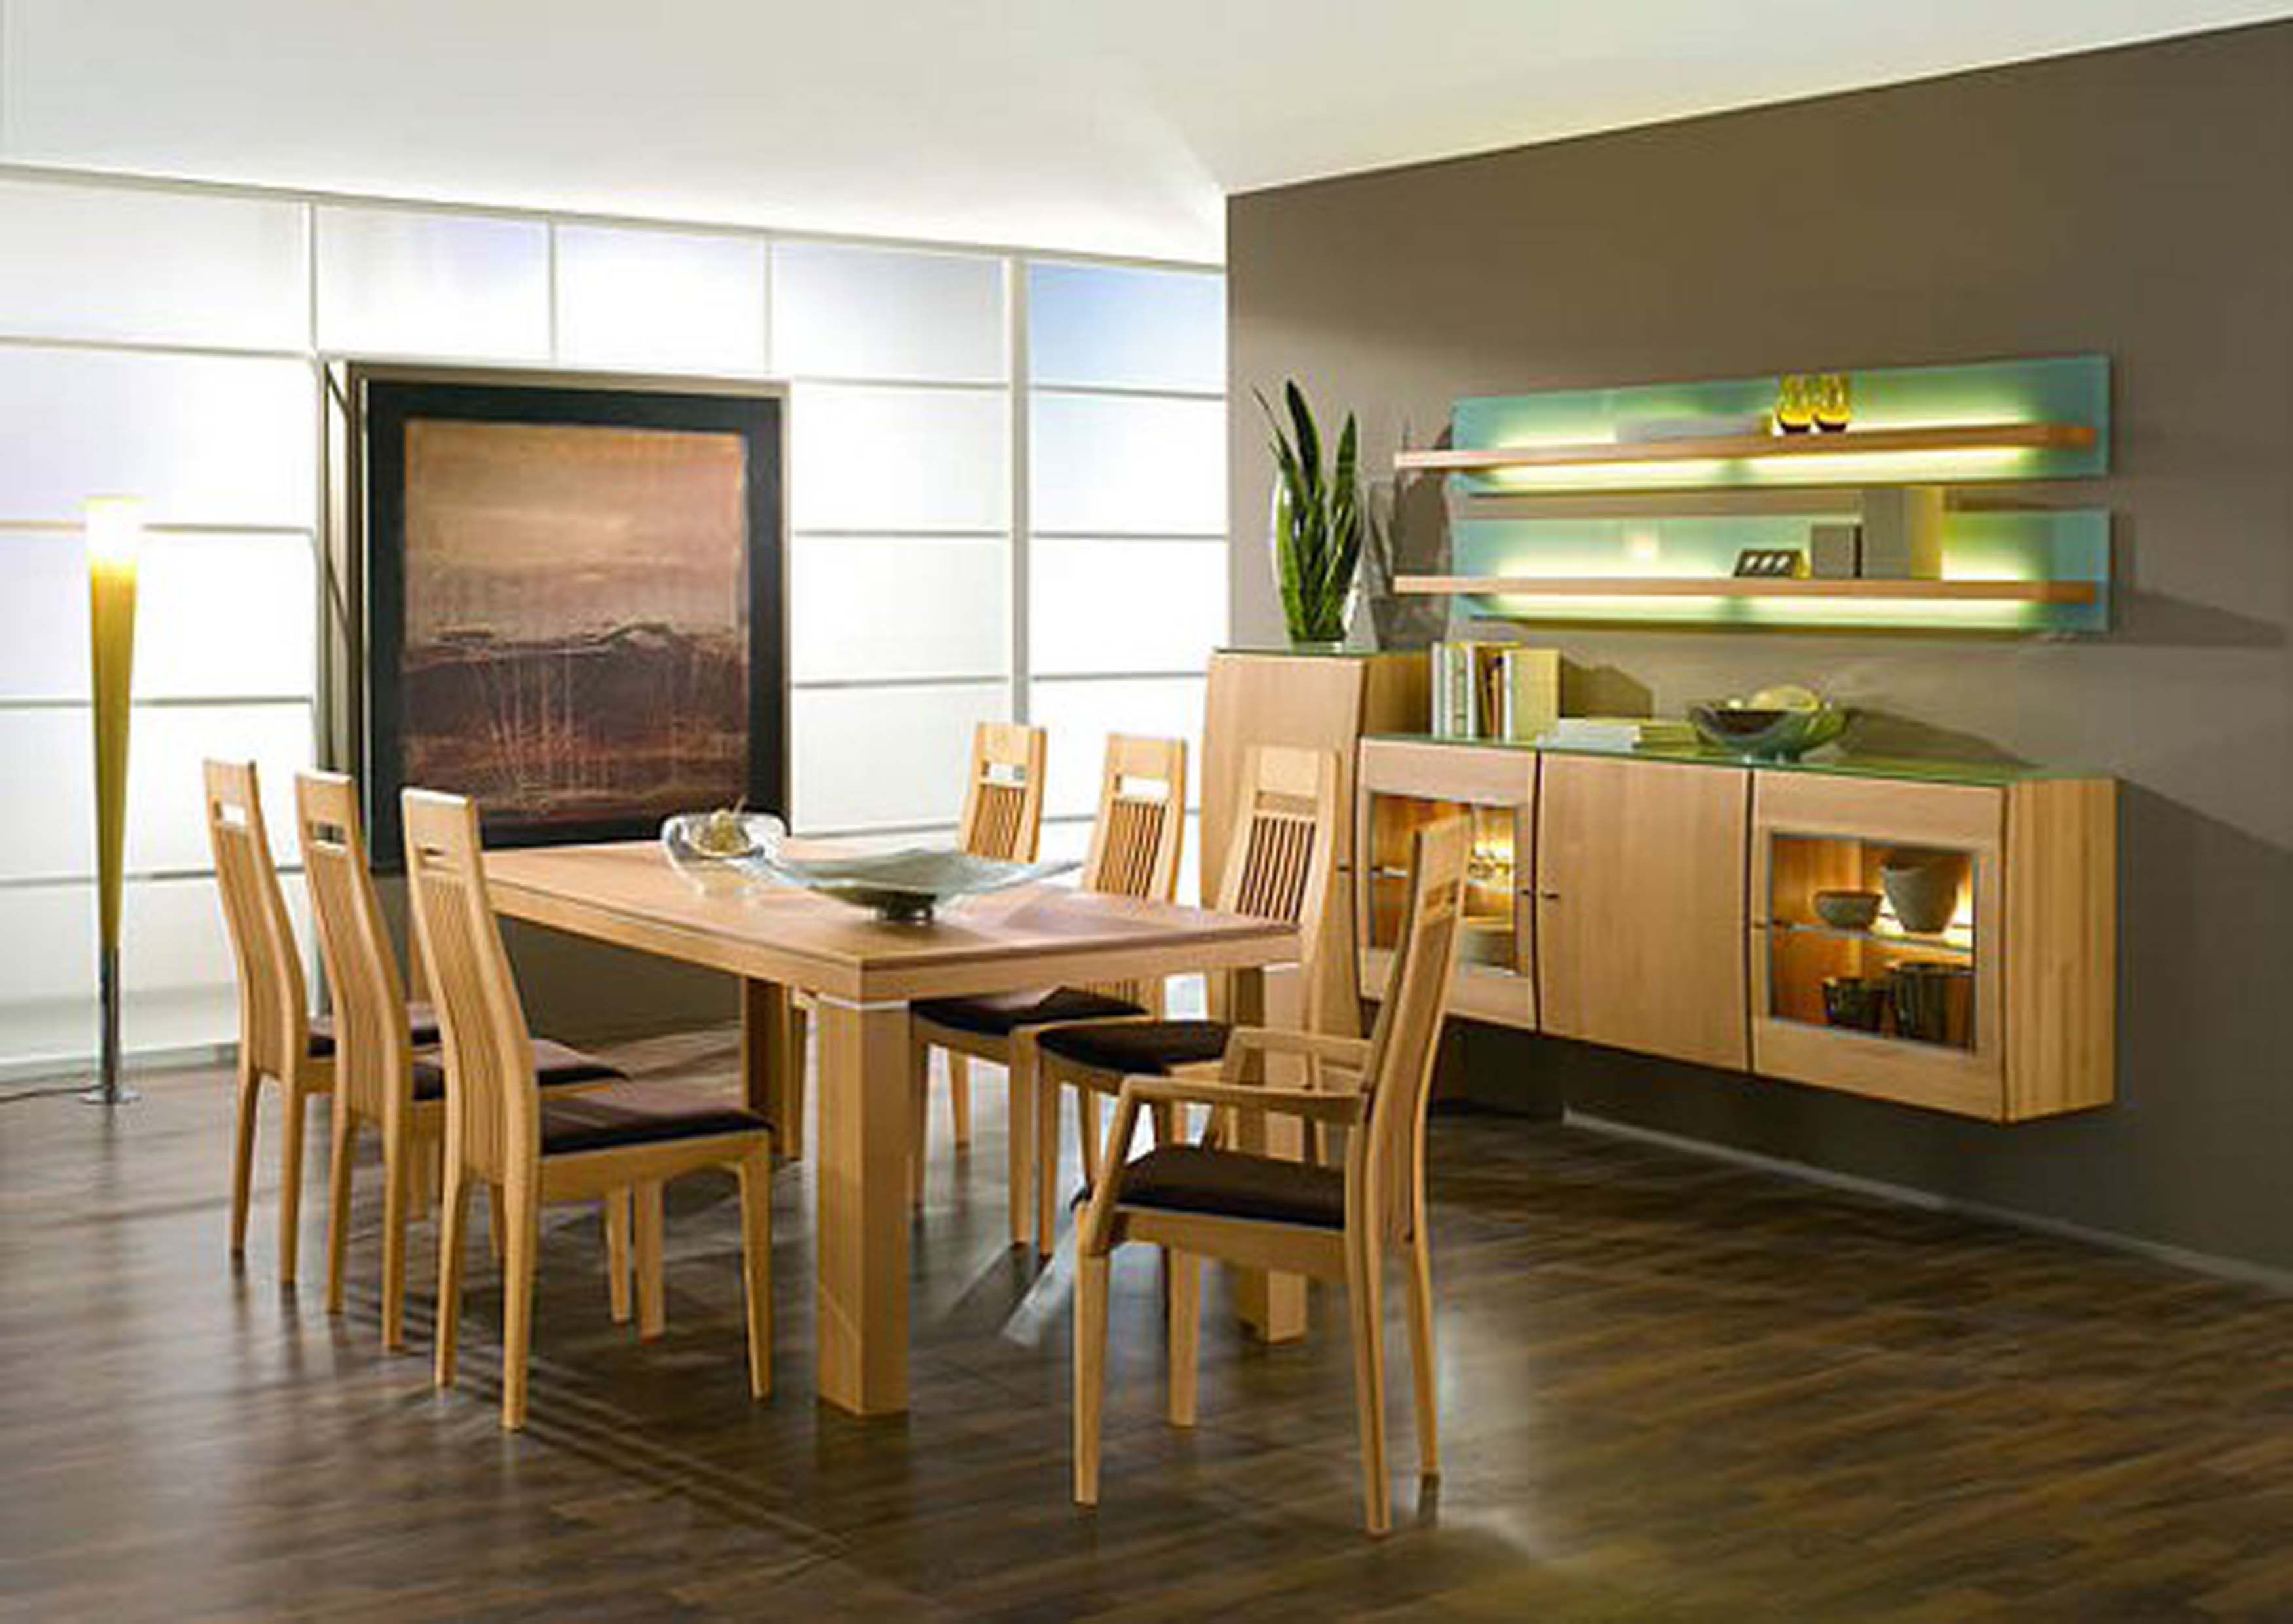 Kitchen Wooden Dining Room Table Design Ideas For Minimalist With Laminate Flooring Wall Units